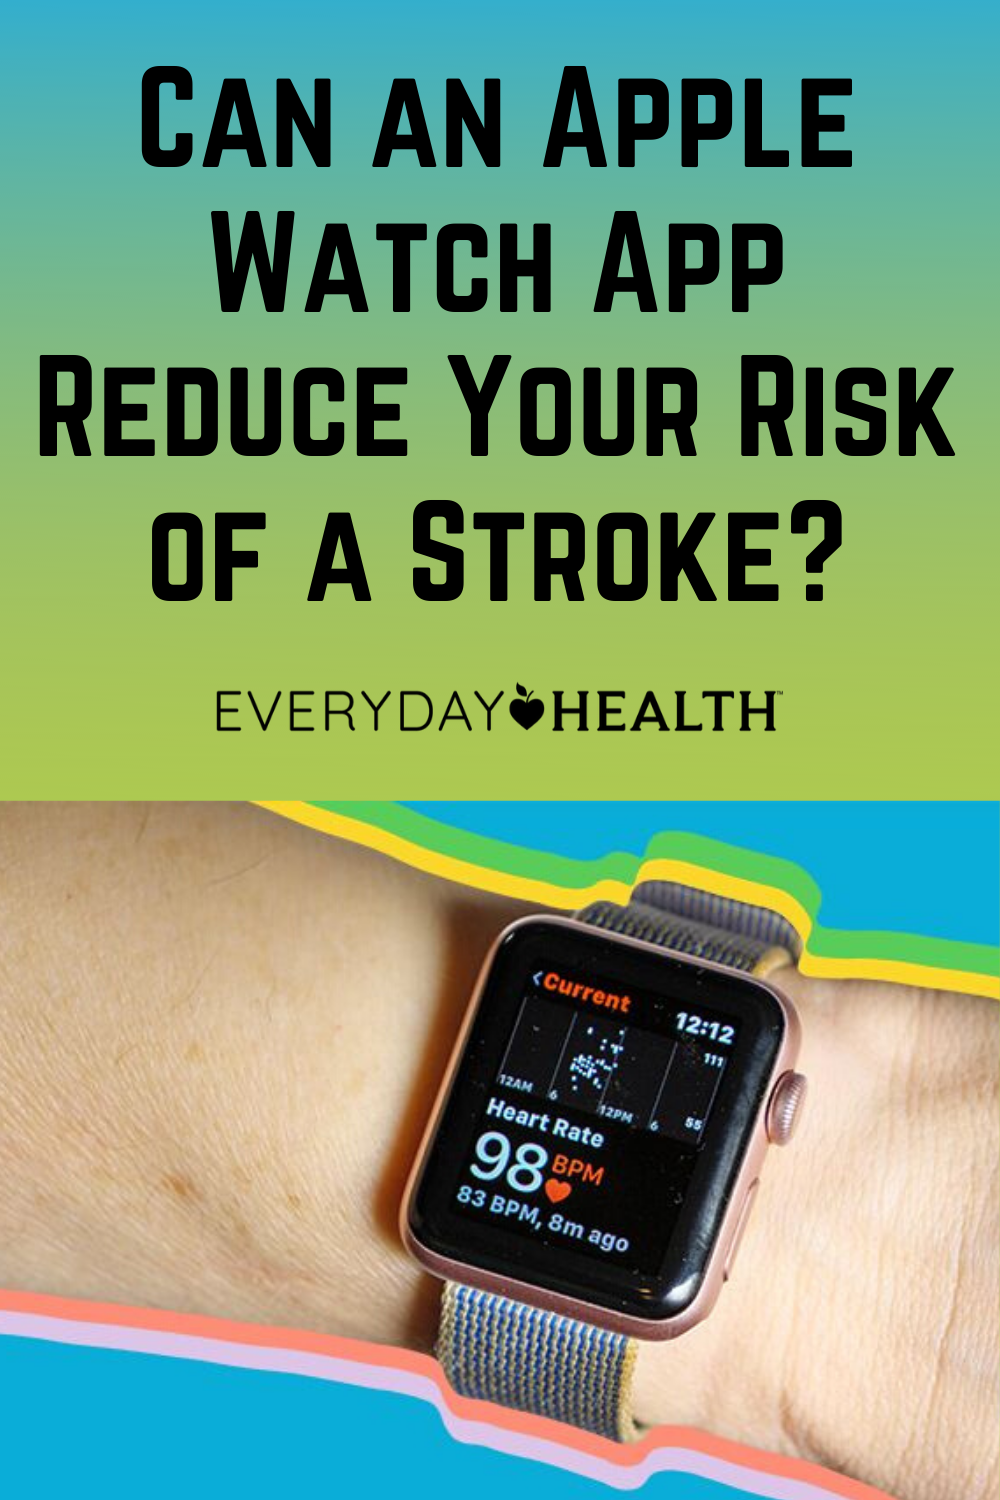 Can an Apple Watch App Reduce Your Risk of a Stroke